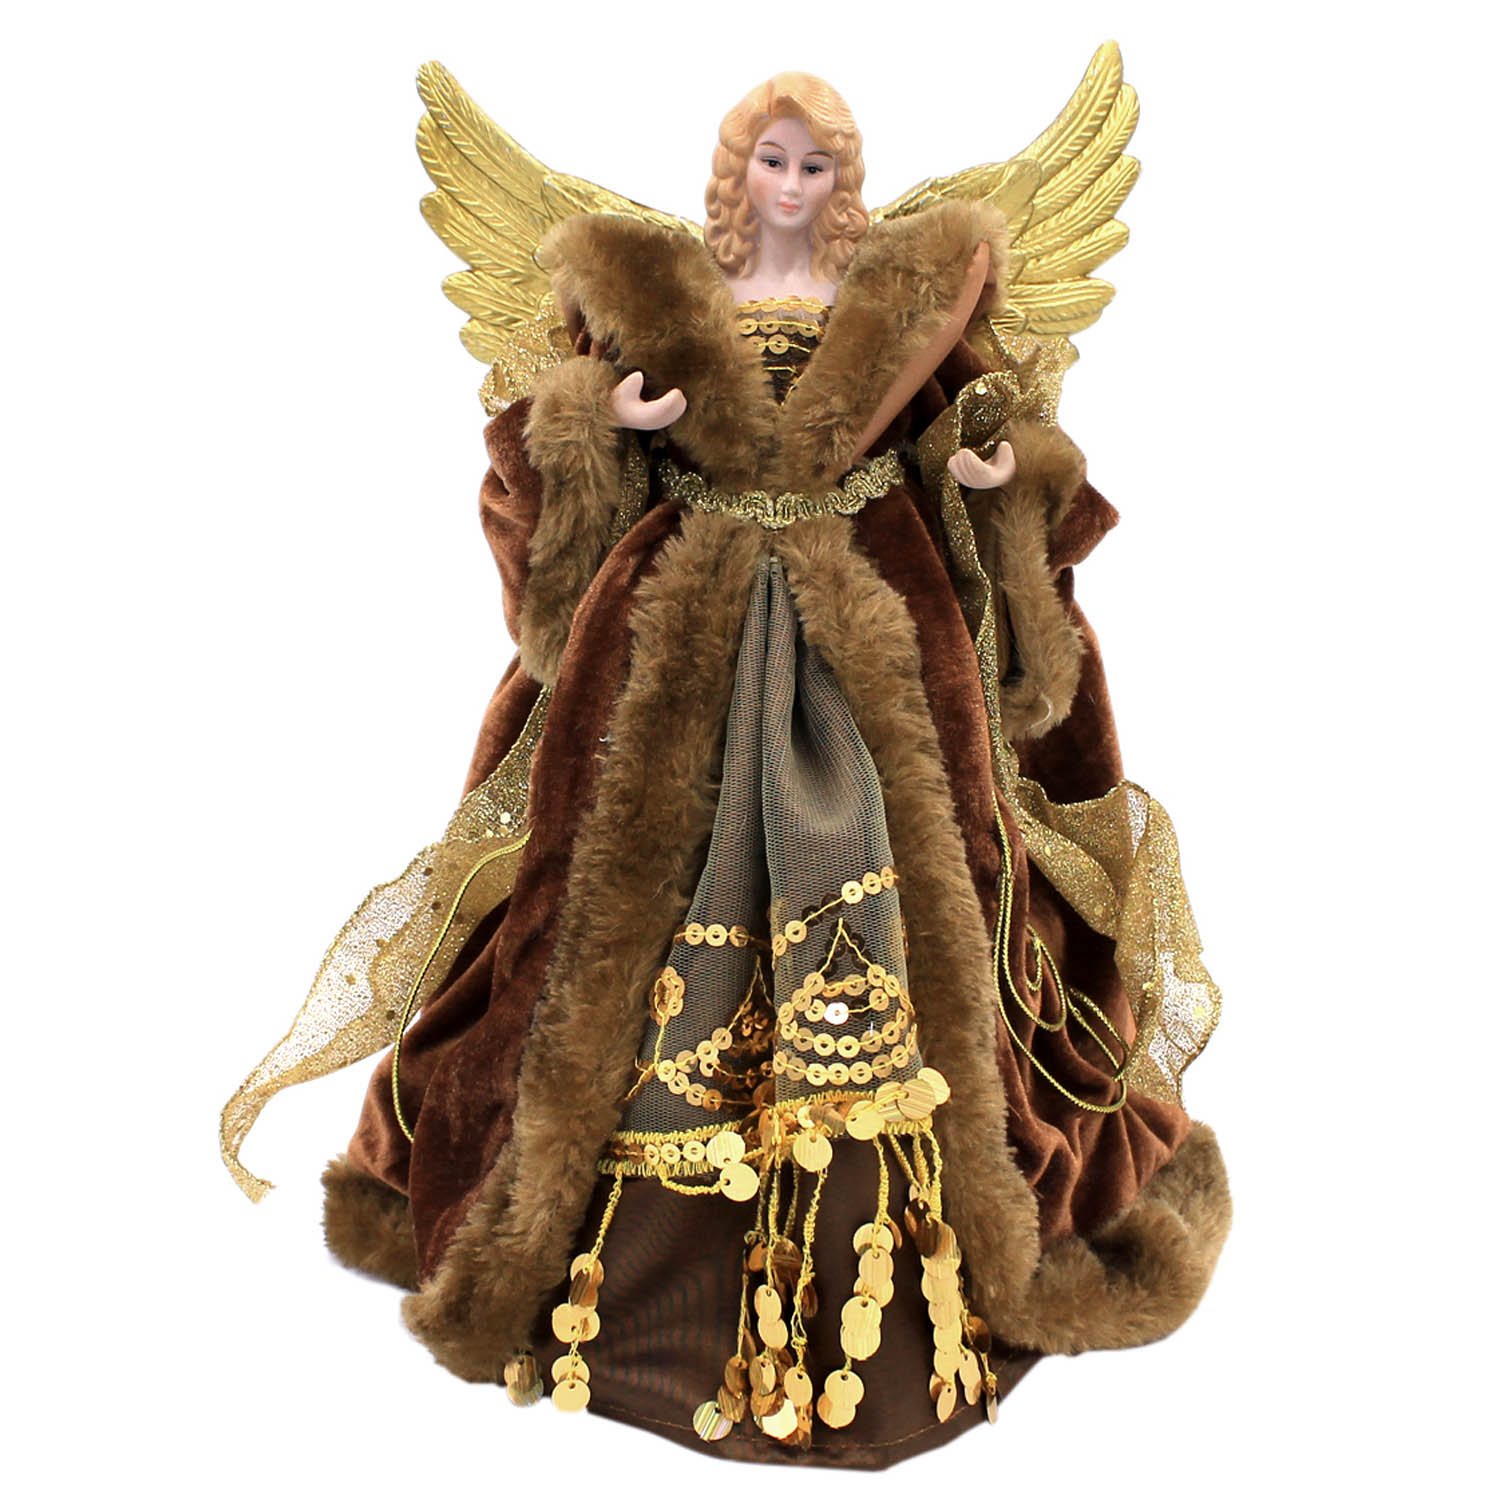 Angel Christmas Tree Topper.Details About Christmas Tree Topper Traditional Fairy Angel Xmas Tree Top Ornament Decoration